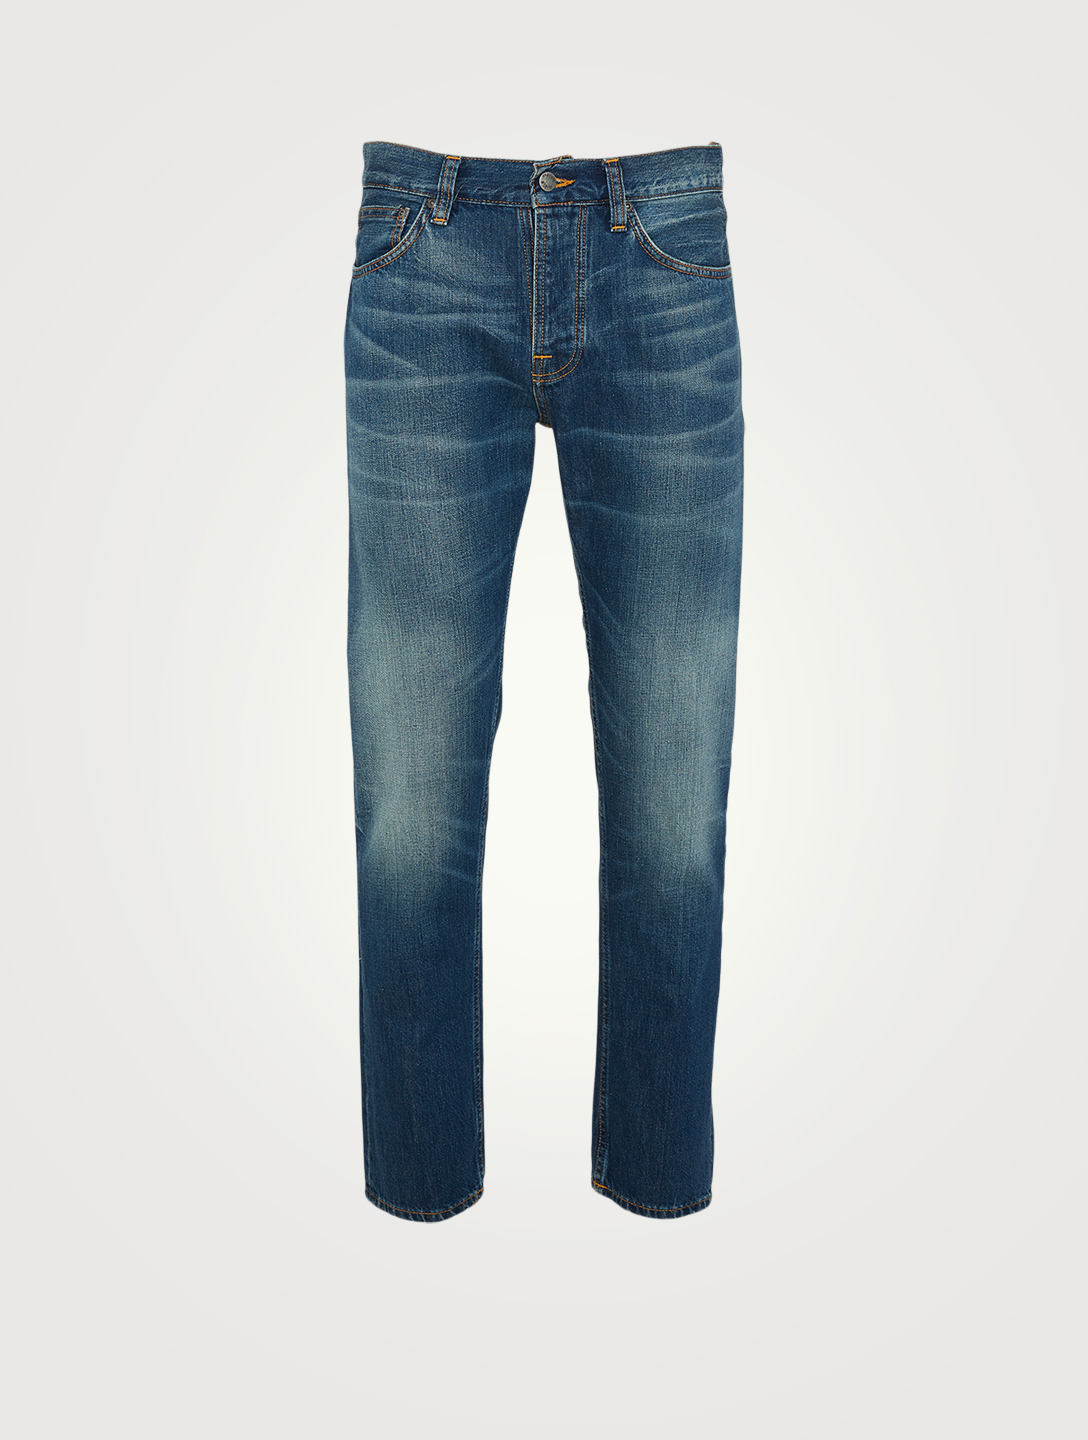 NUDIE Steady Eddie II Tapered Jeans Men's Blue